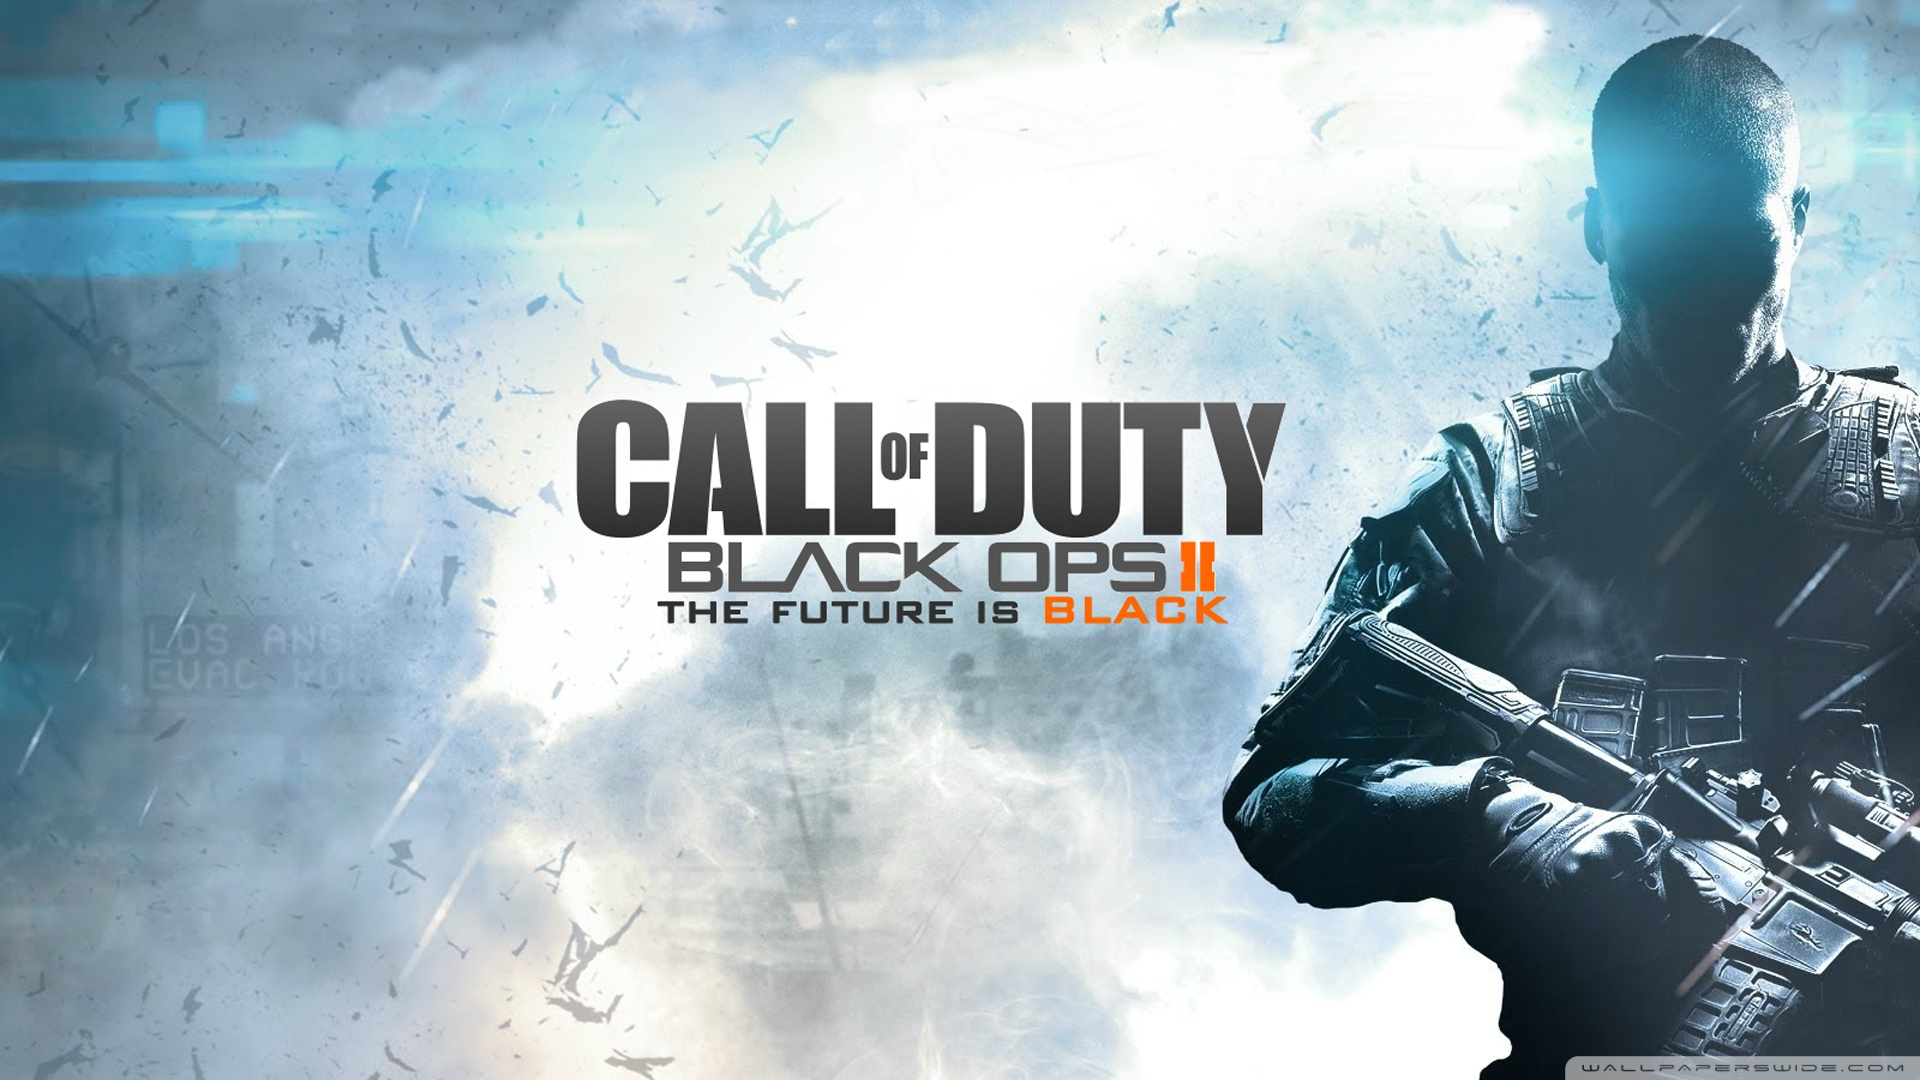 New Teaser Trailer Revealed For Call Of Duty Black Ops 3